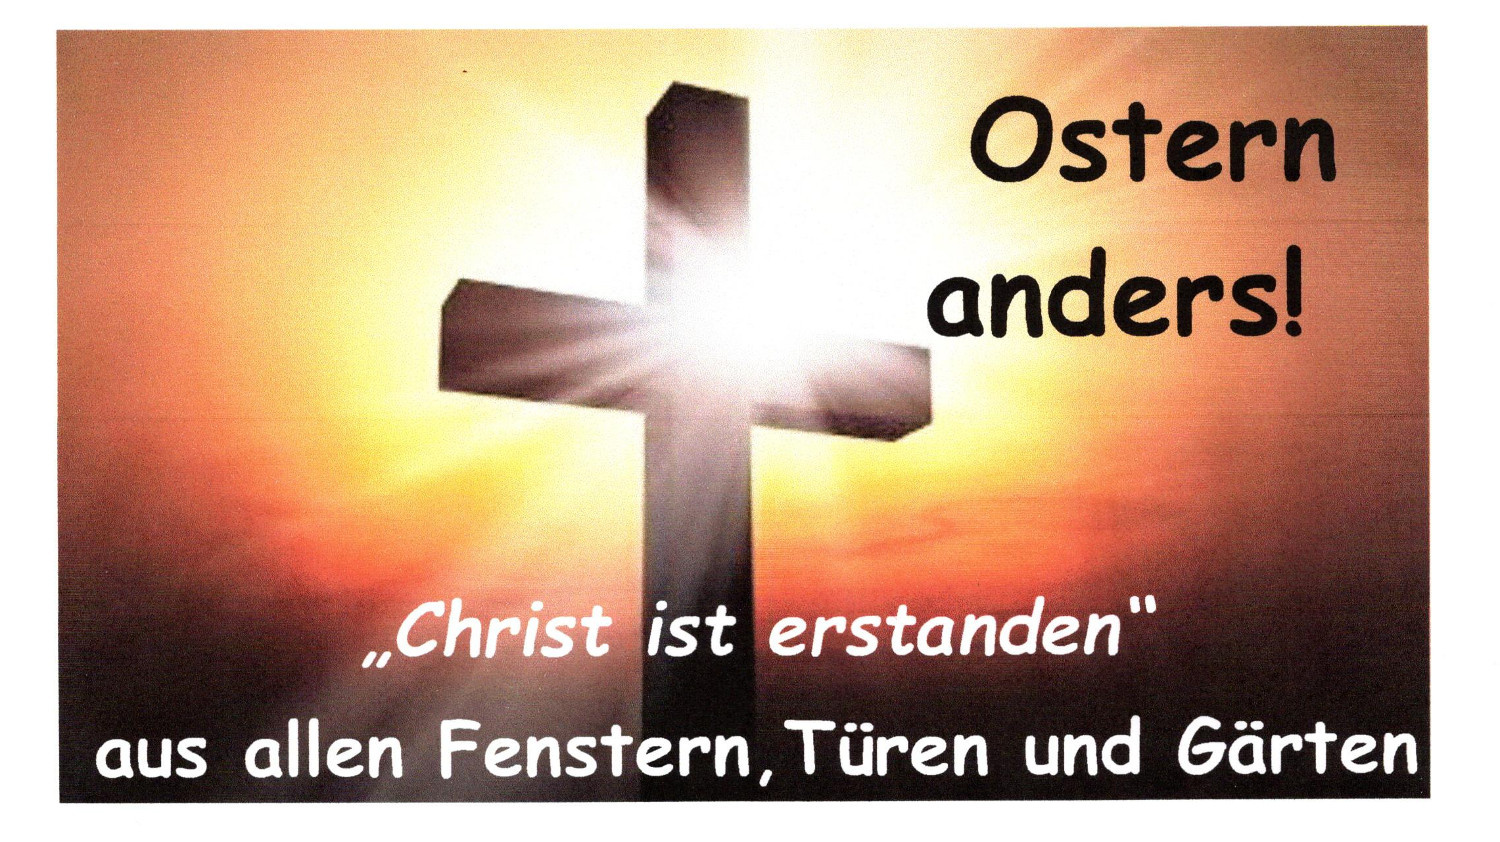 Ostern anders